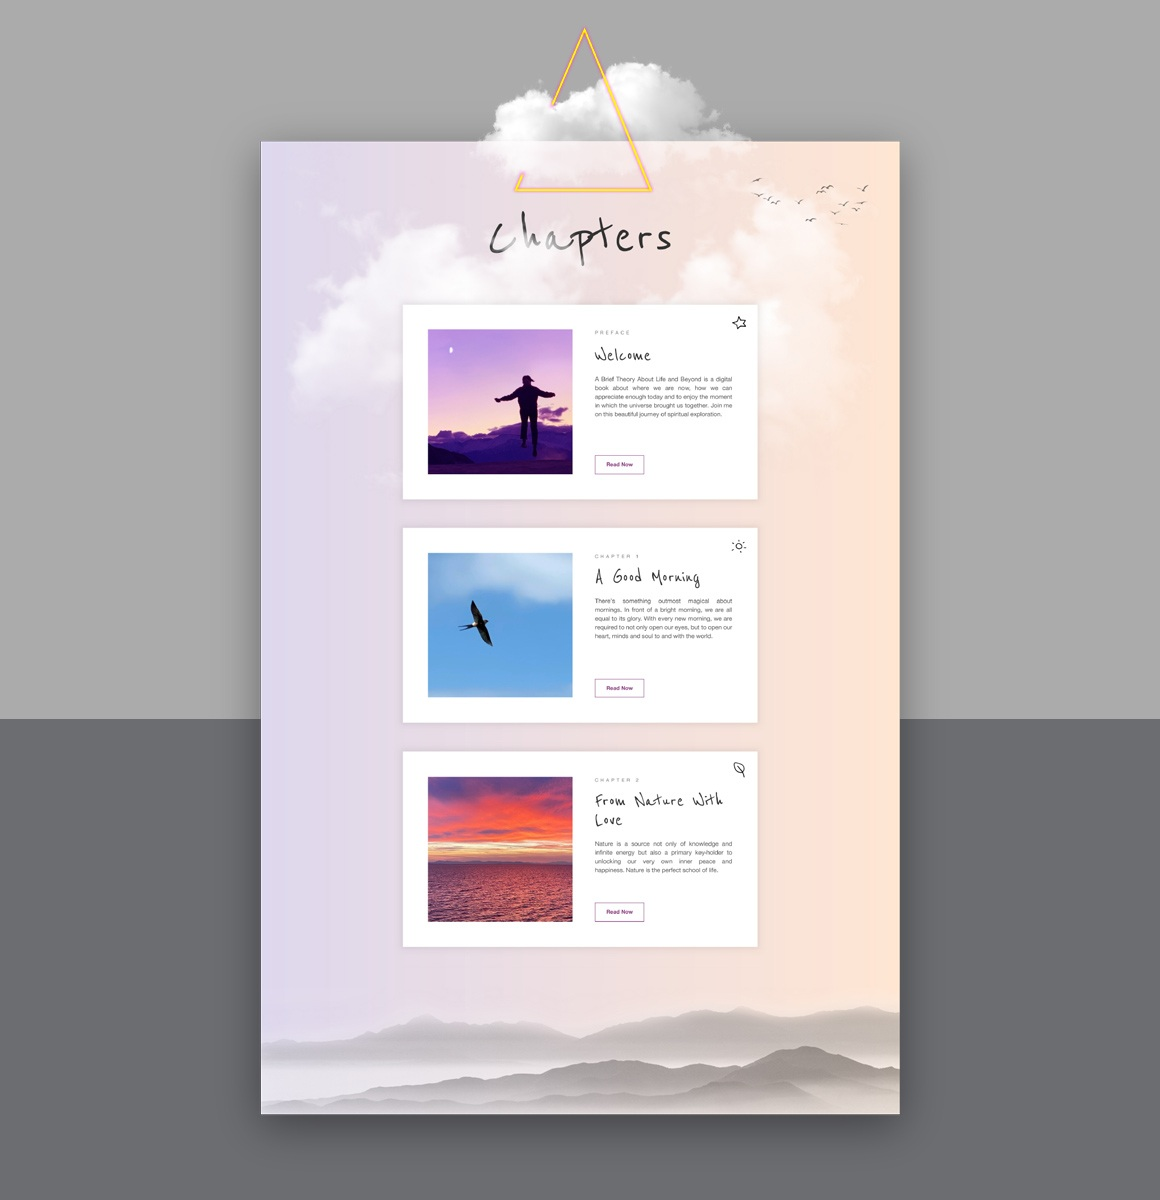 Web design using Webflow CMS for the chapters of the Brief Theory of Life e-book.